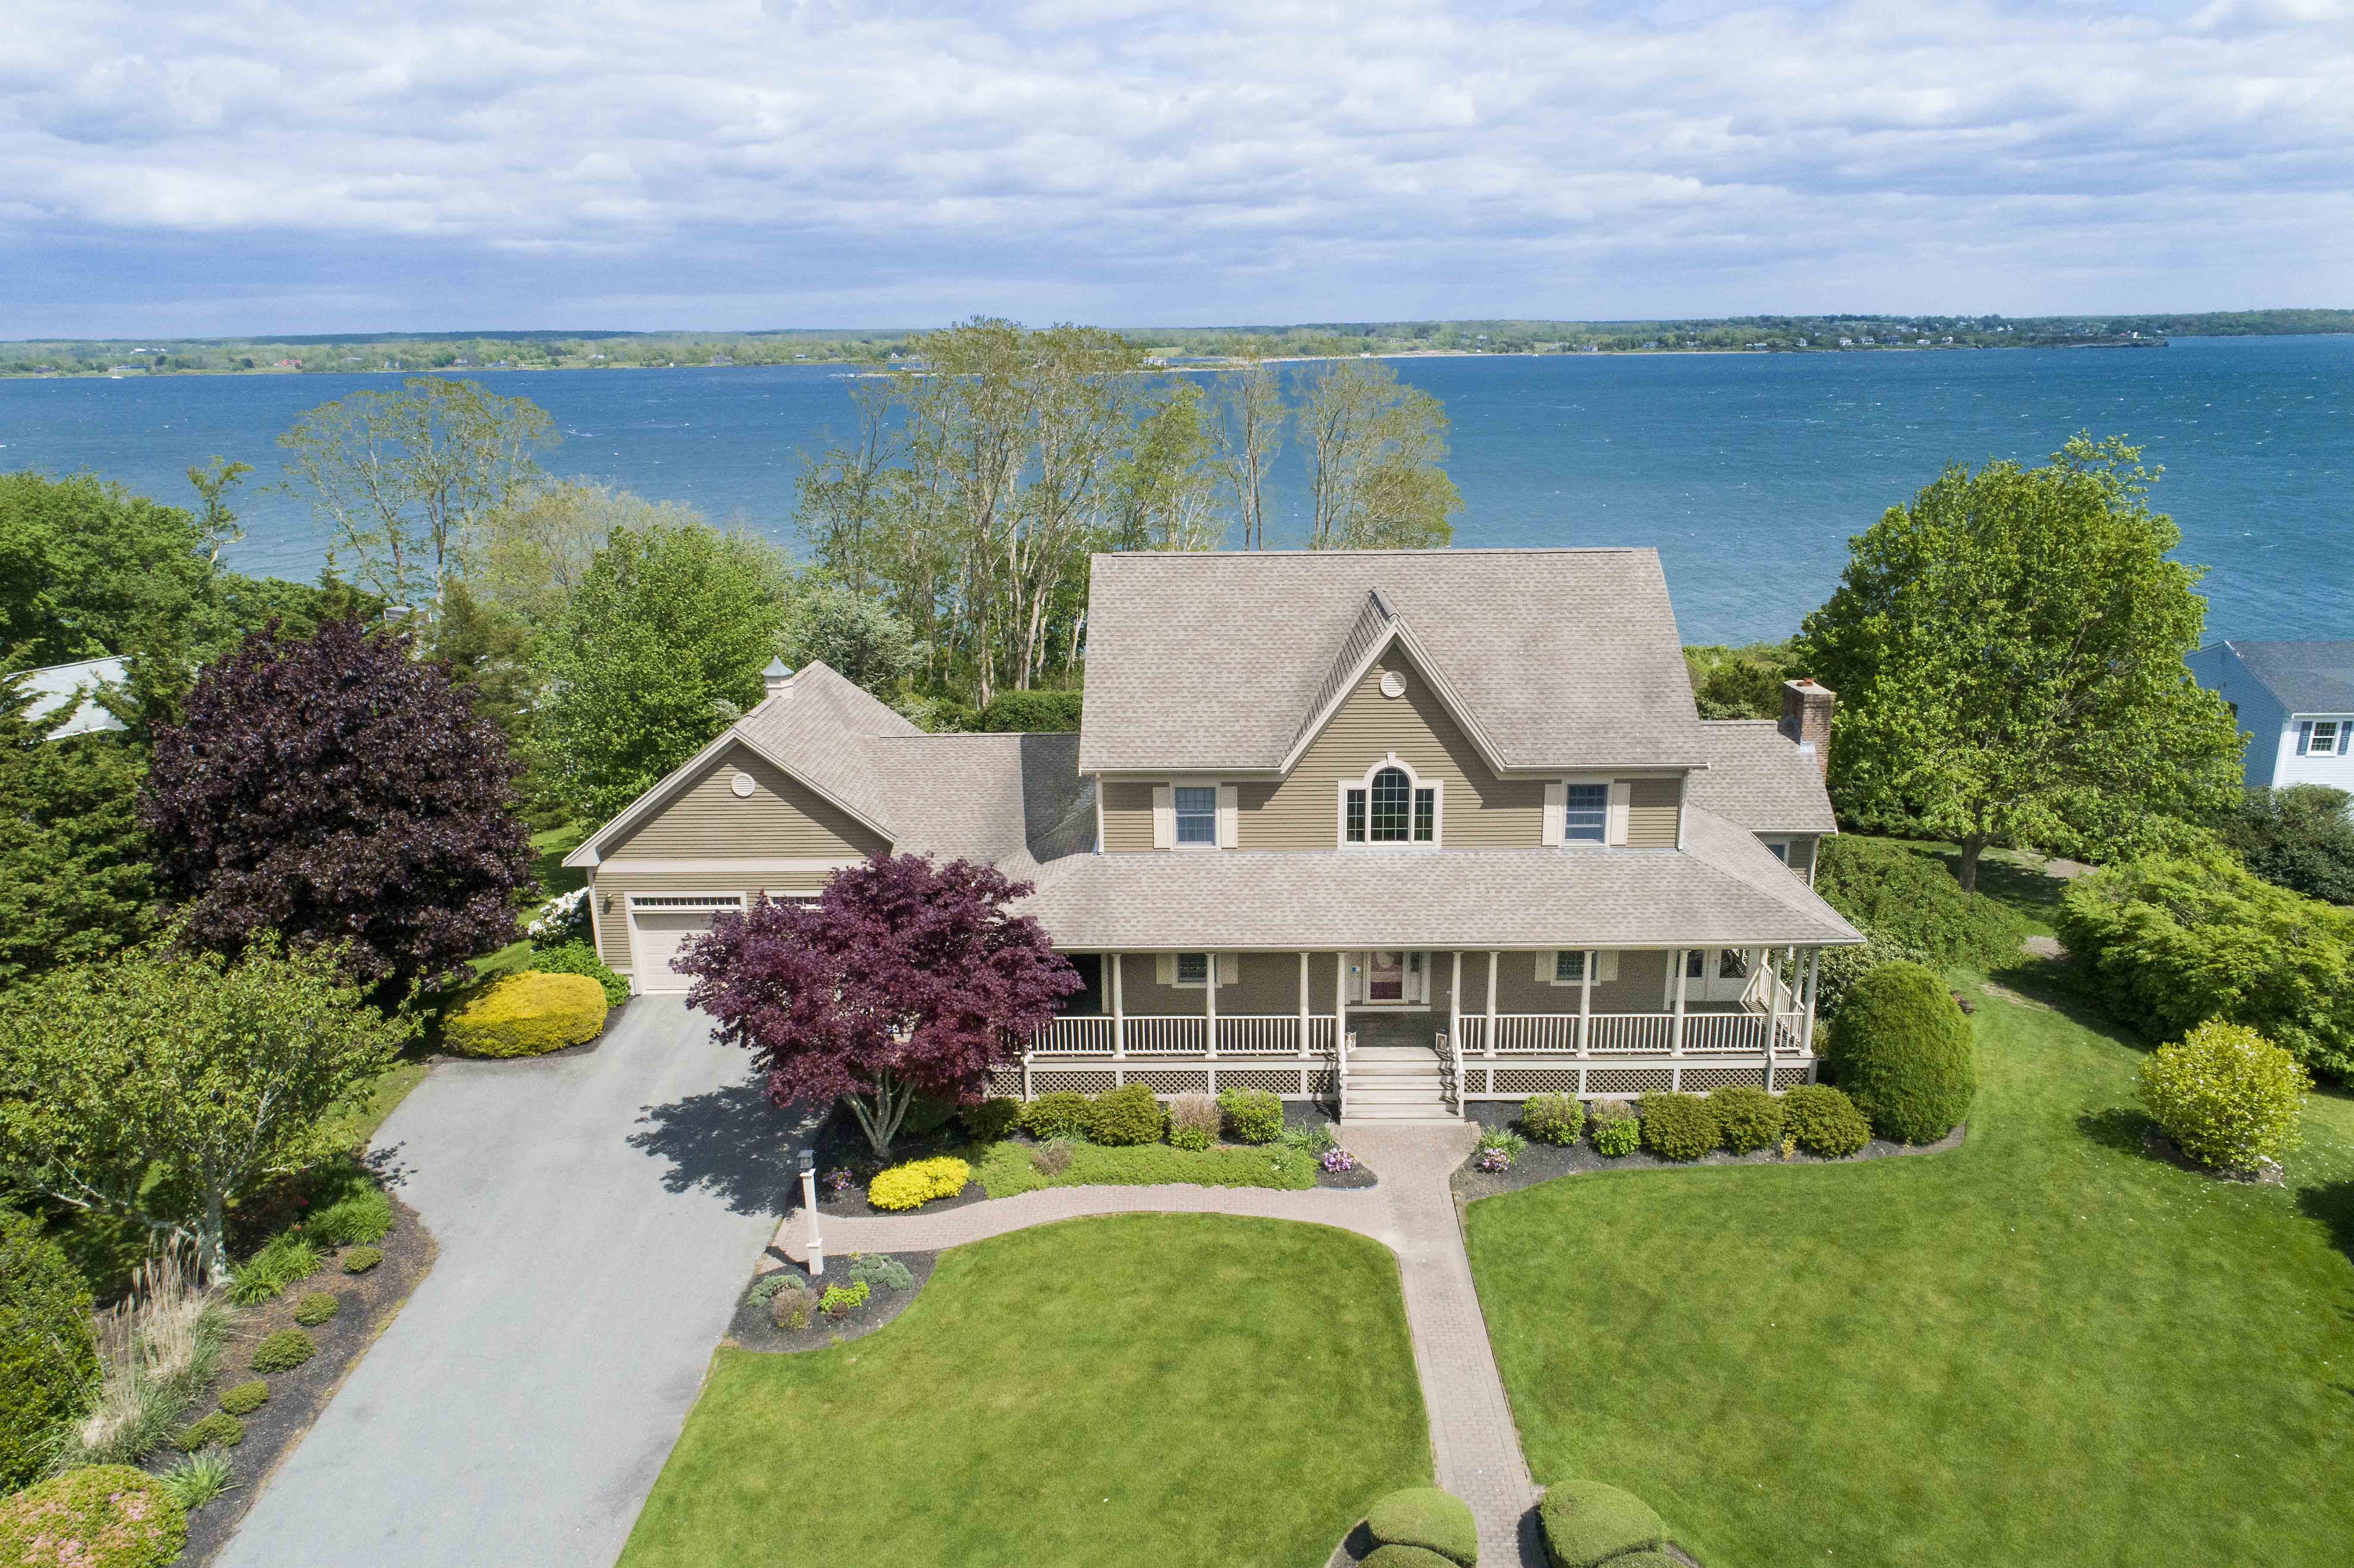 WATERFRONT COLONIAL SELLS FOR $1.39M+ MARKING 2ND HIGHEST SALE IN PORTSMOUTH YEAR-TO-DATE*